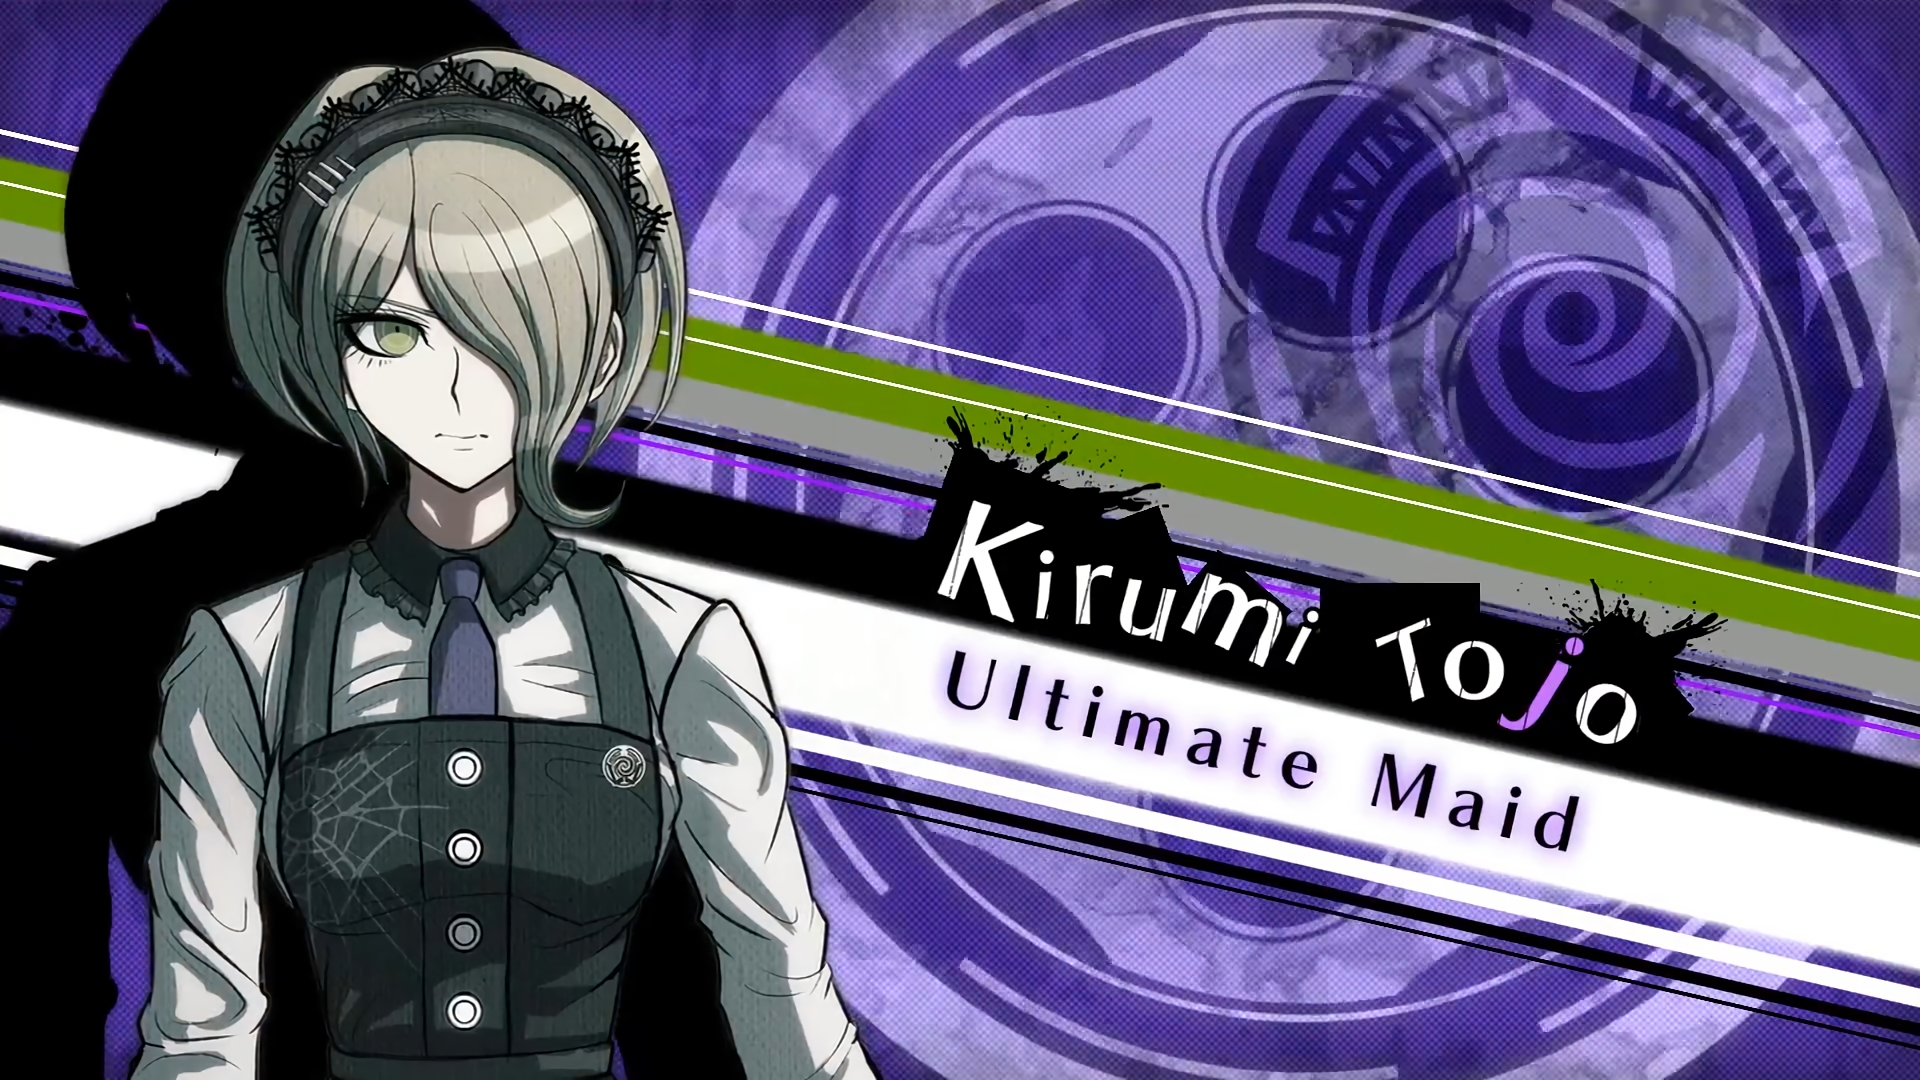 danganronpa v3 kirumi tojo wallpaper 67393